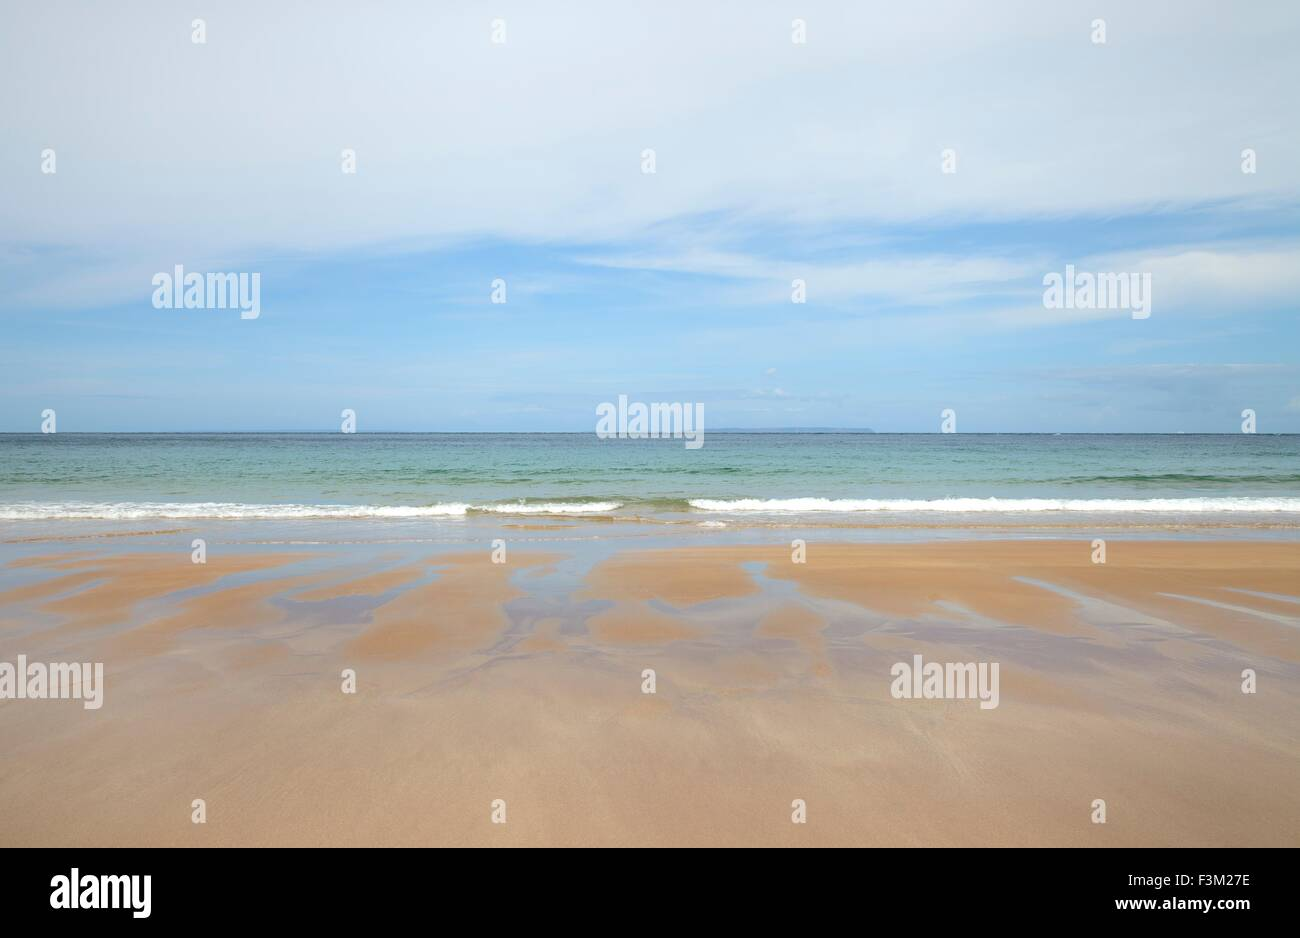 A calm, relaxing beach background with muted colours. - Stock Image